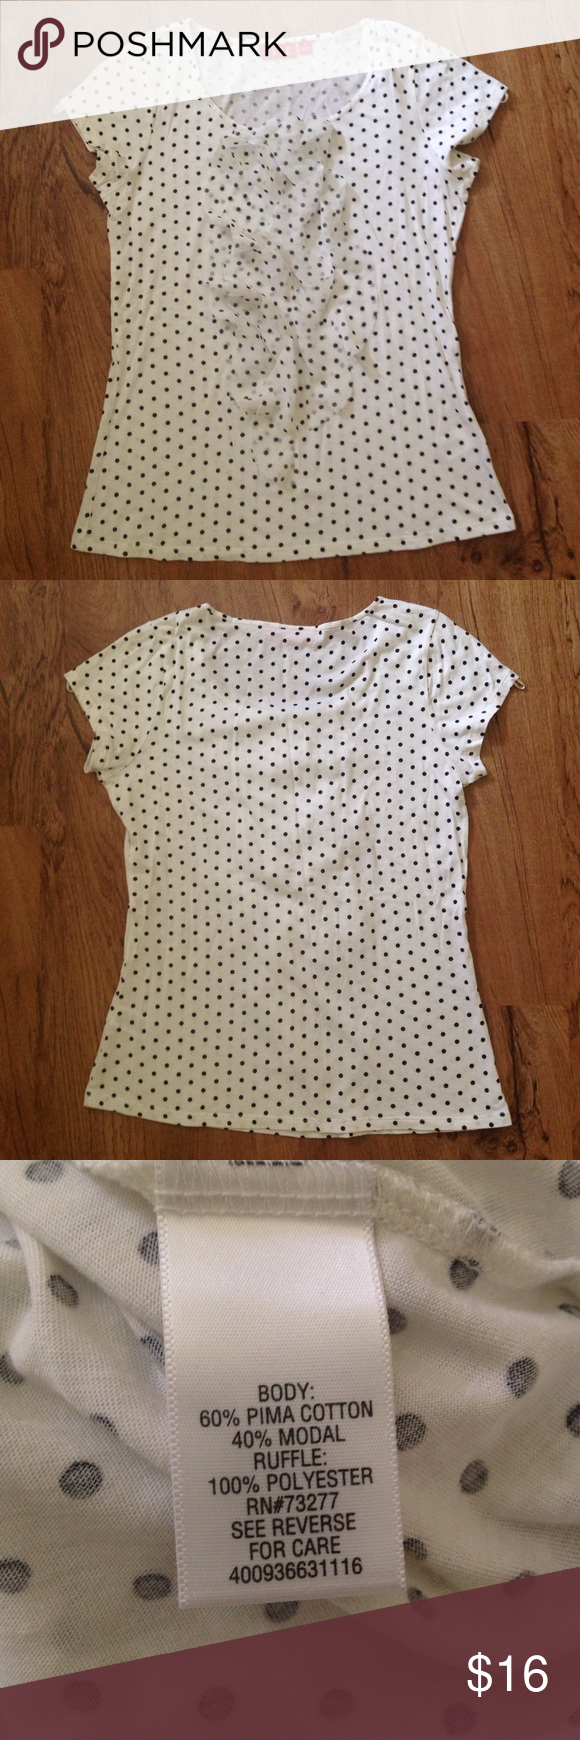 Elle Polka Dot Top Very soft and lightweight white top with sheer ruffle details; its not cream or bright white. Never worn; excellent condition! Elle Tops Blouses